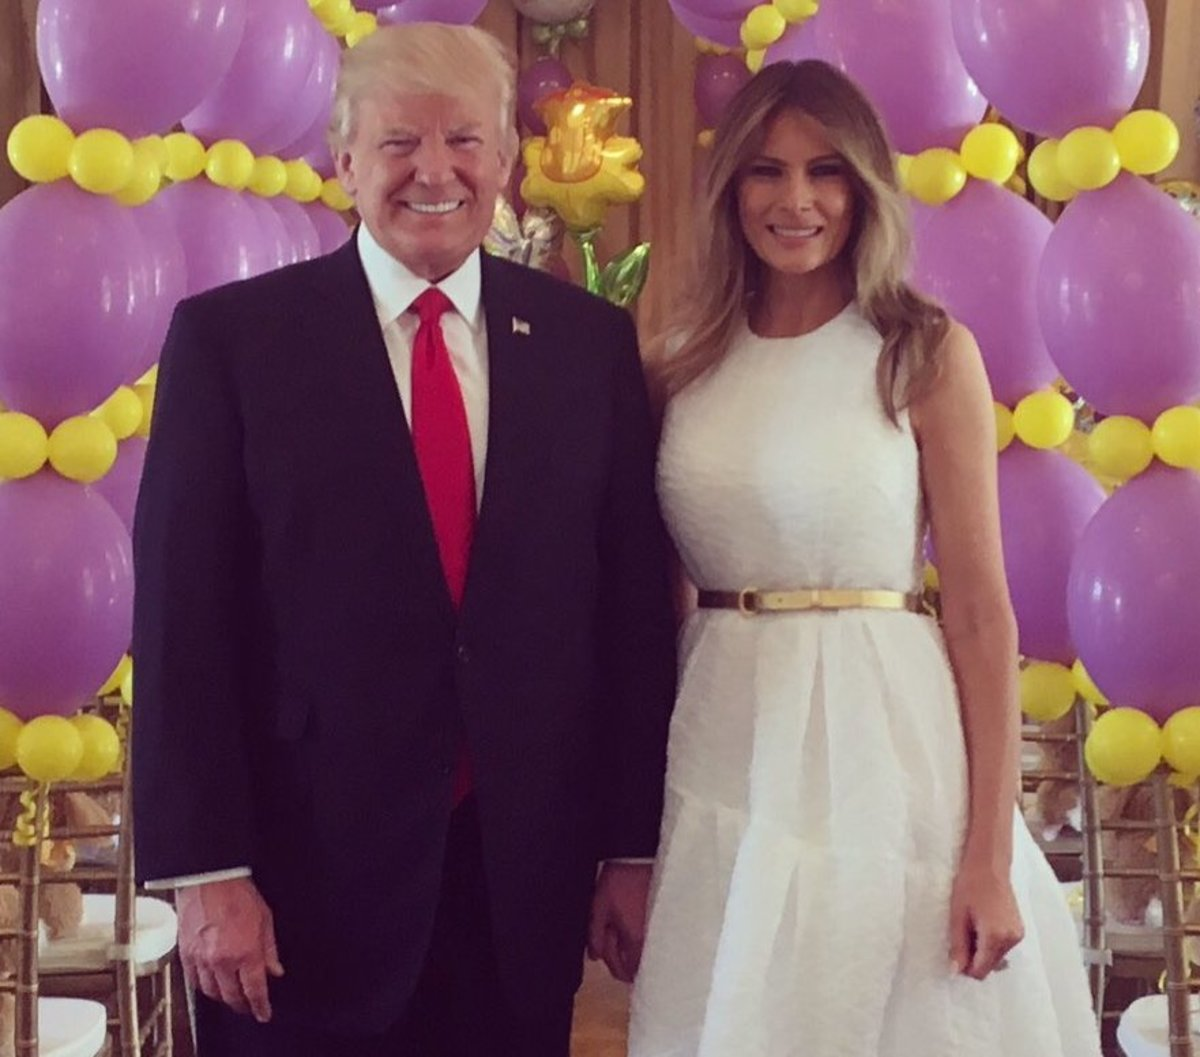 Donald-and-Melania-Trump-Easter-2017-cropped2